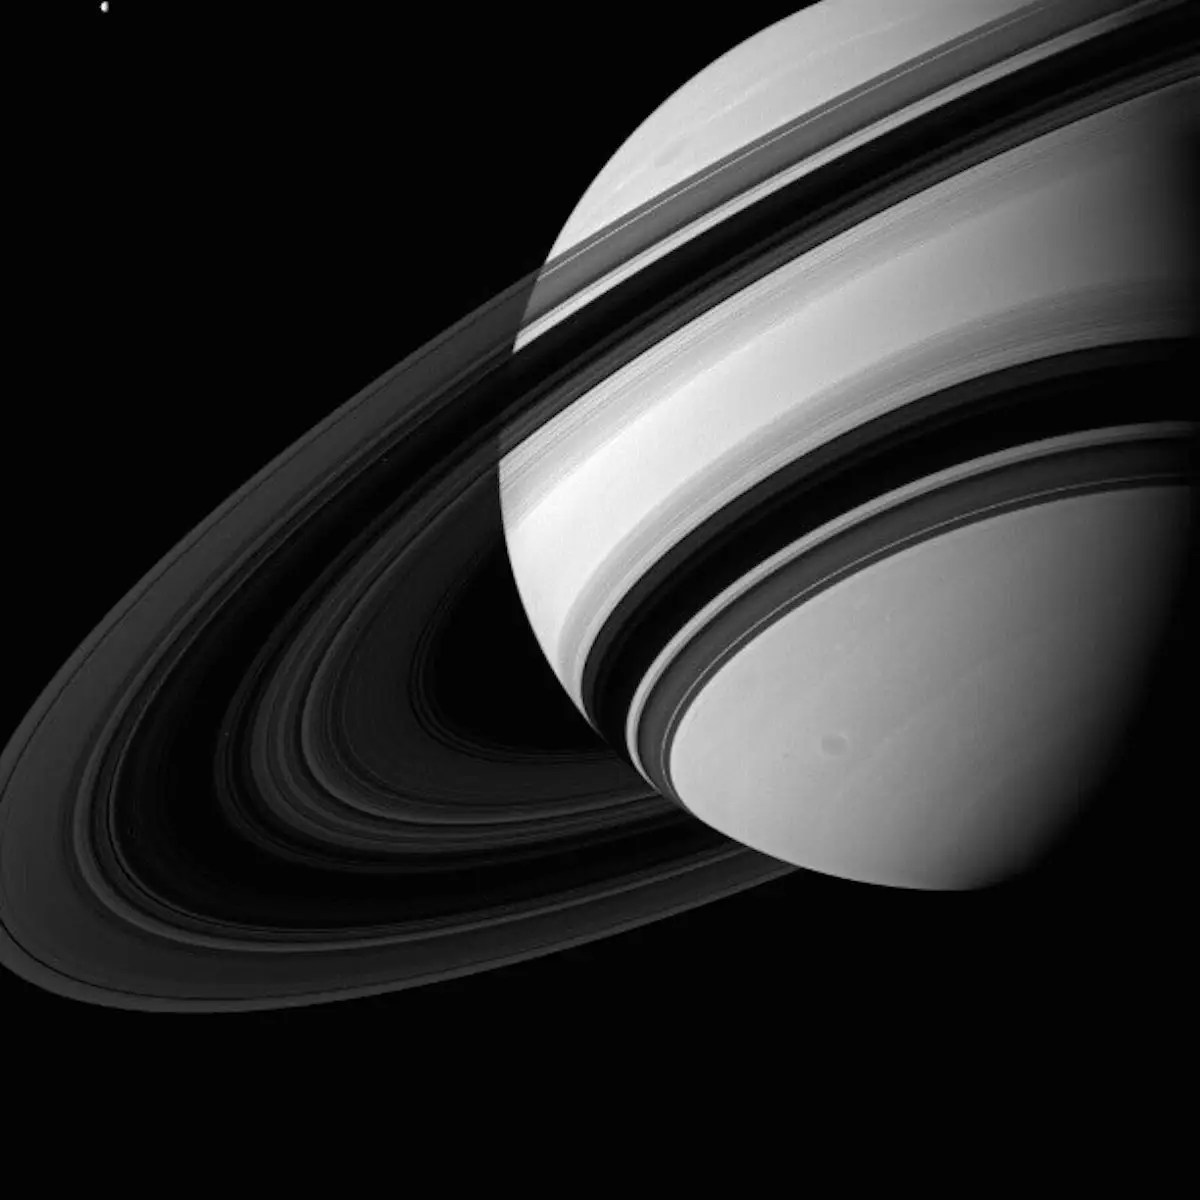 How Big Are Saturns Rings Compared To Earth  Business Insider